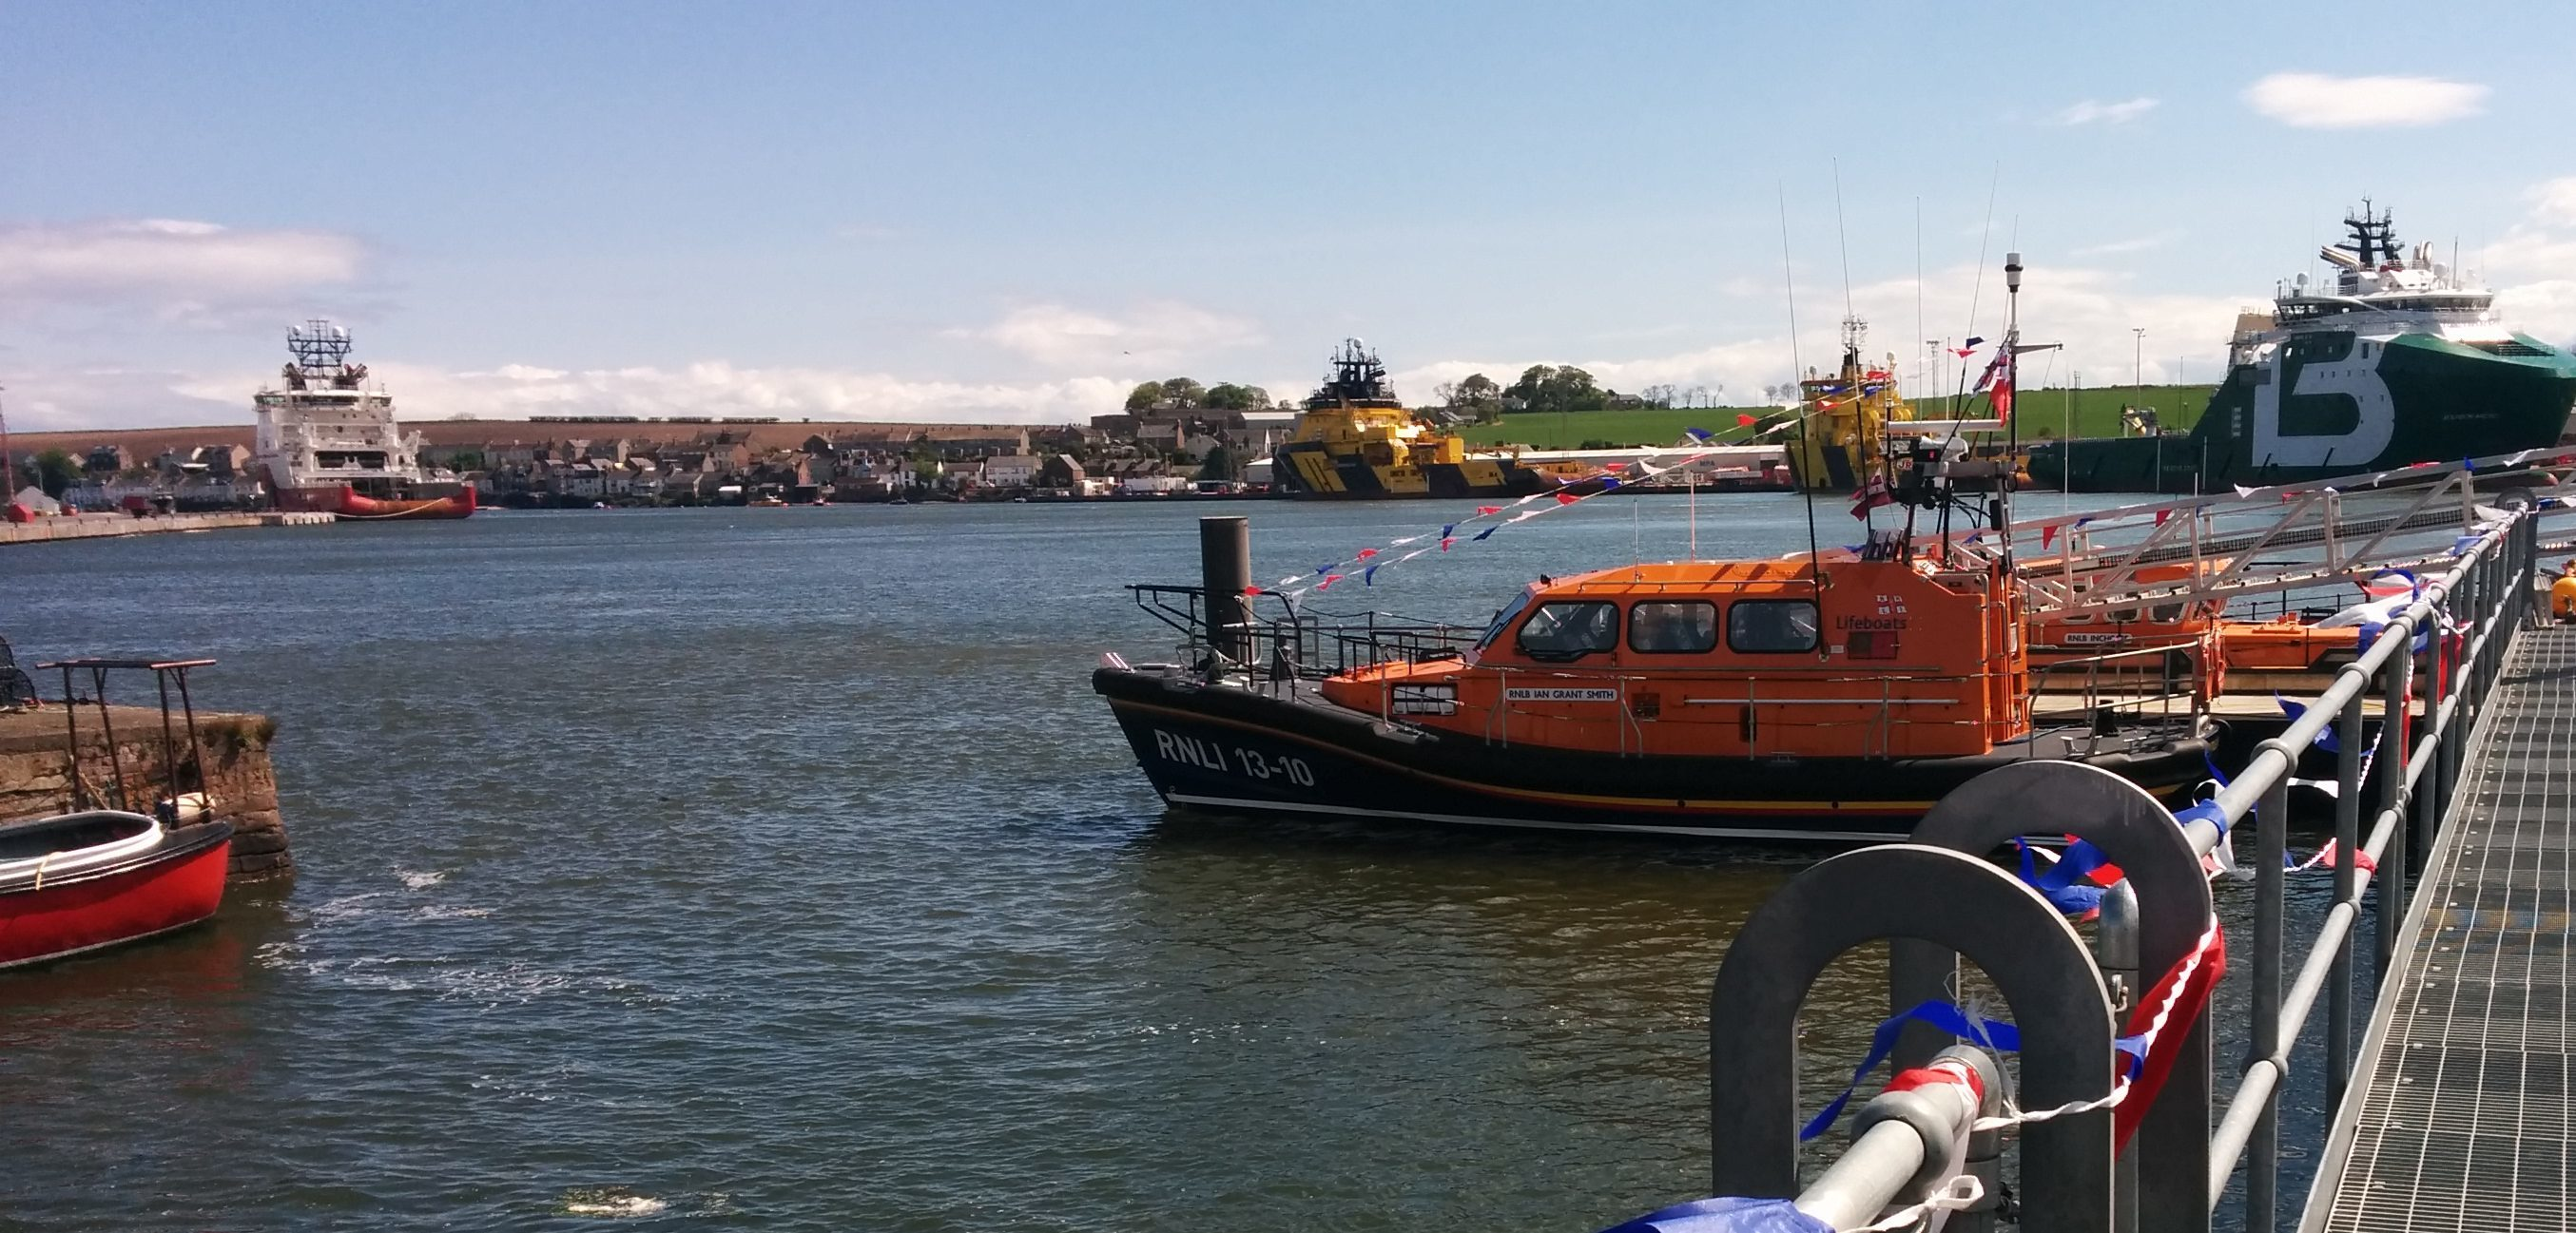 The new £2.1m lifeboat incorporates the very latest computer technology.